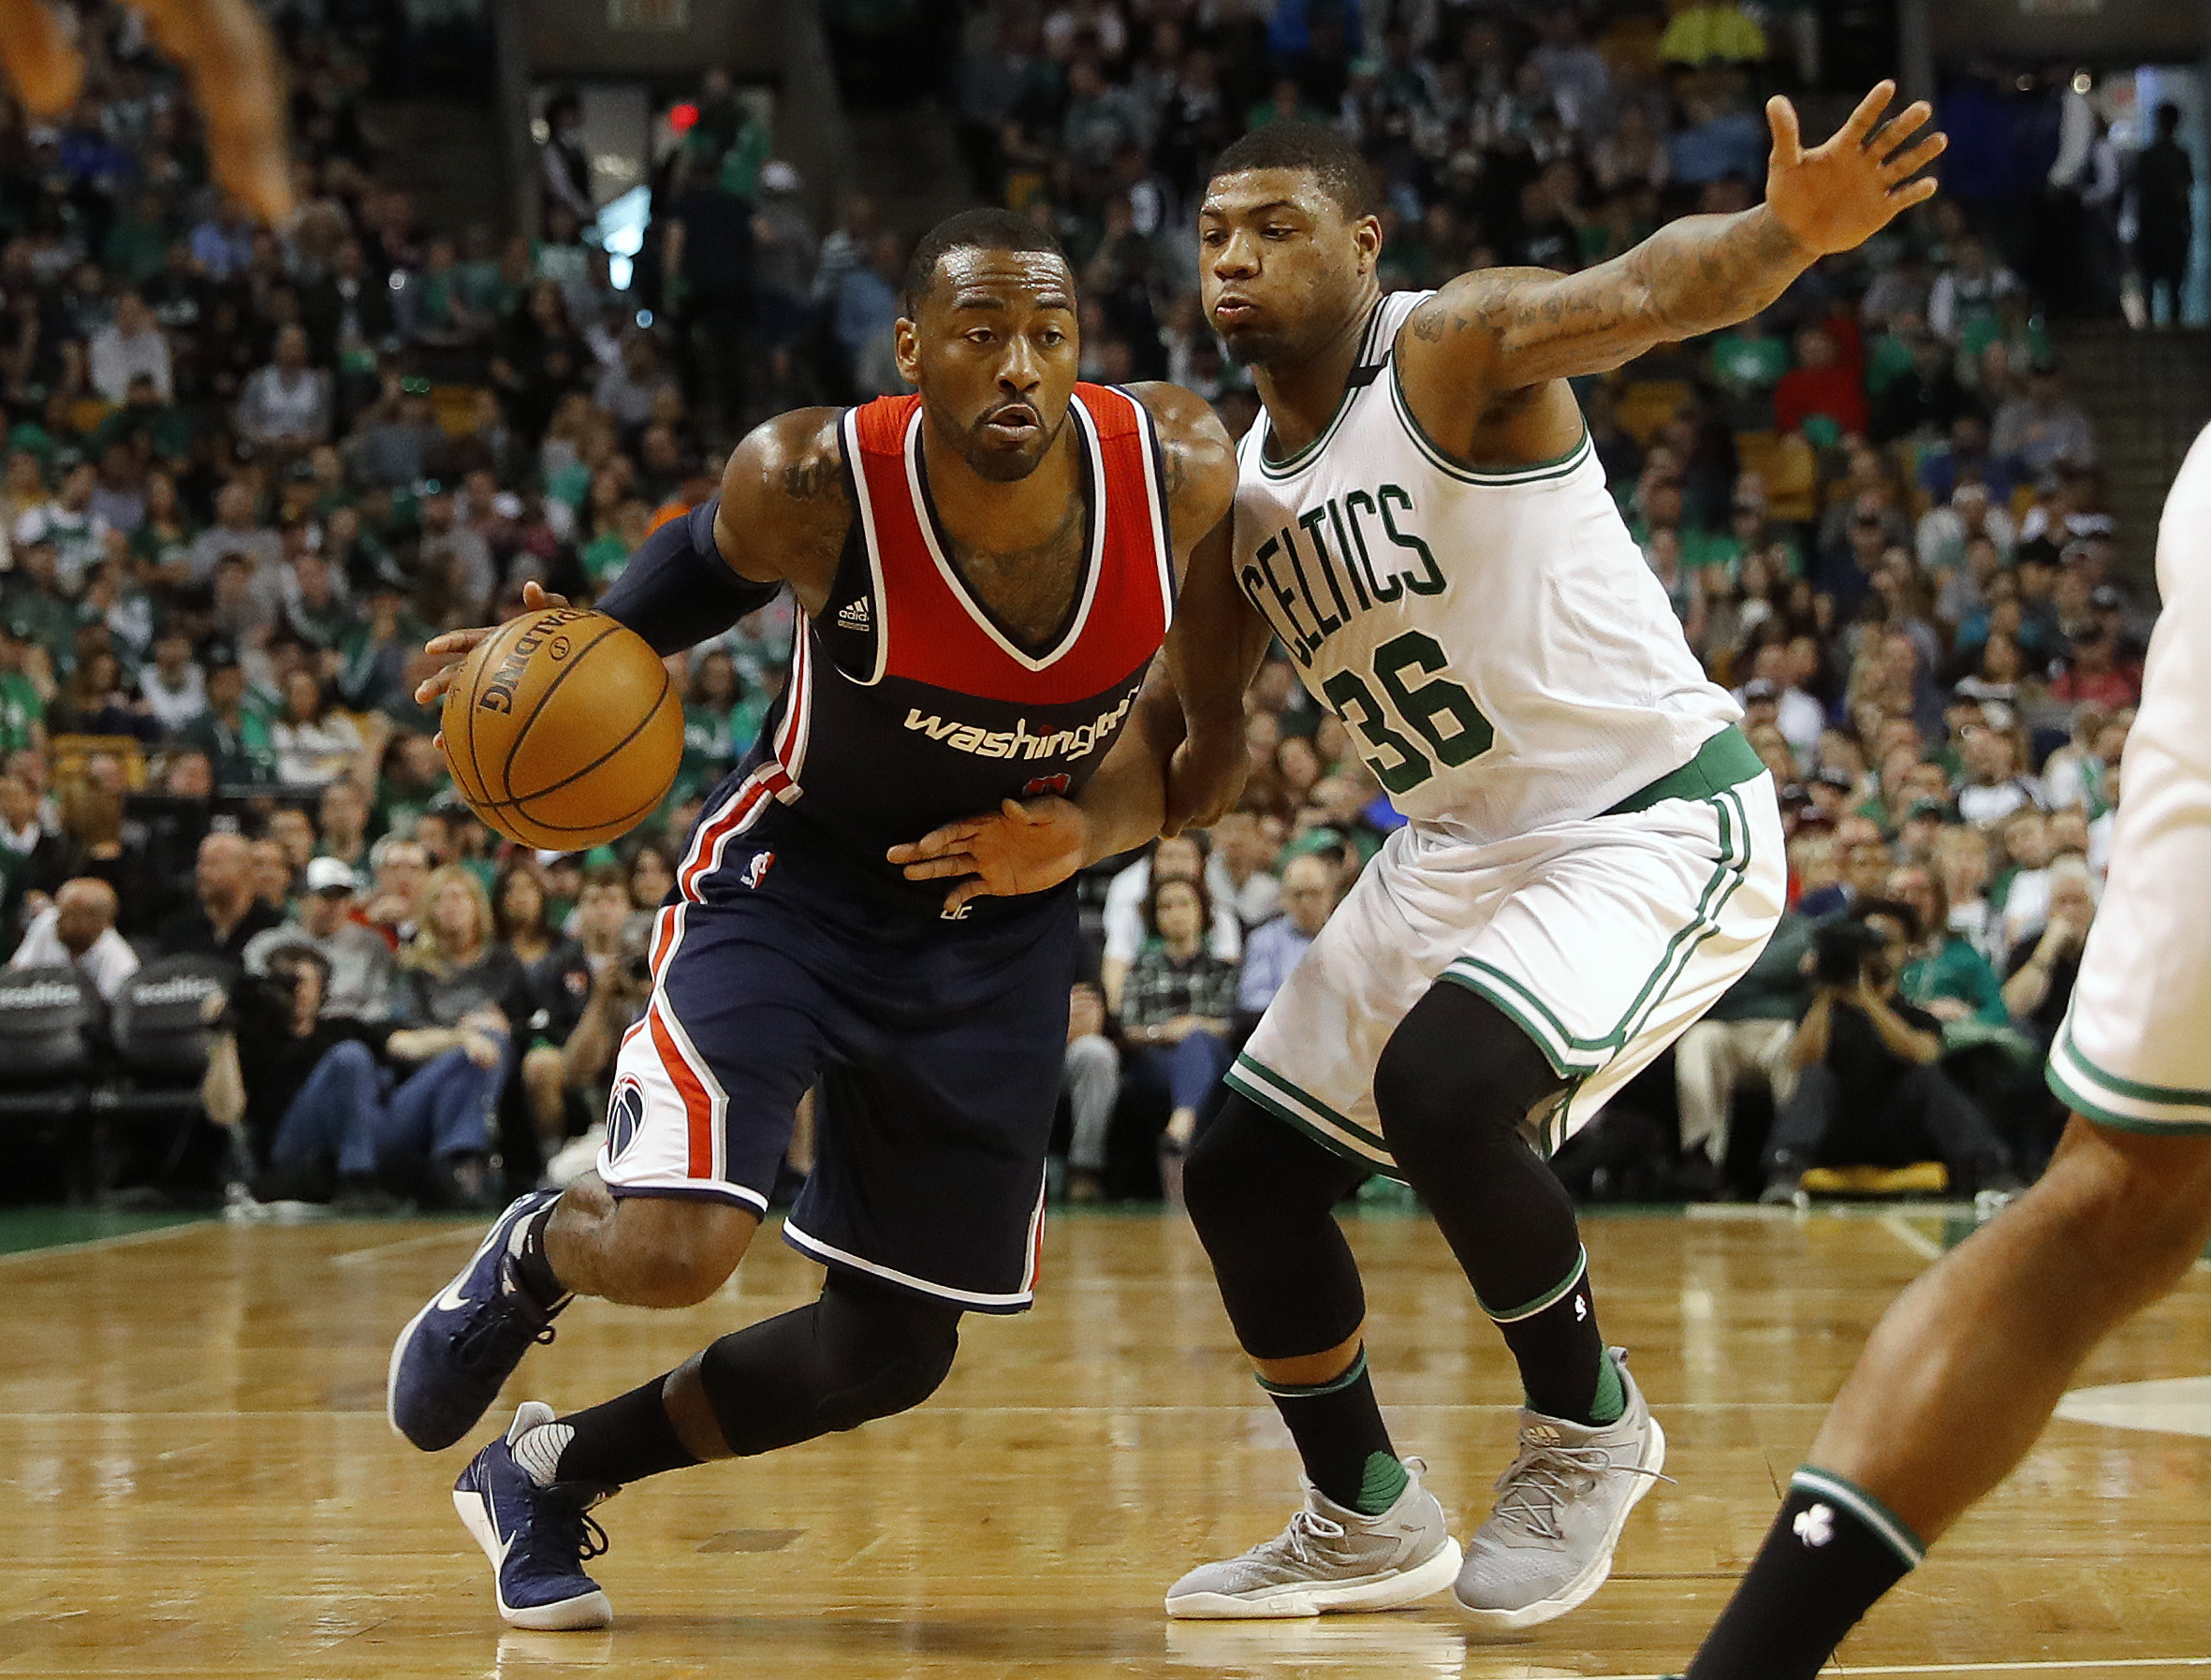 10037200-nba-playoffs-washington-wizards-at-boston-celtics